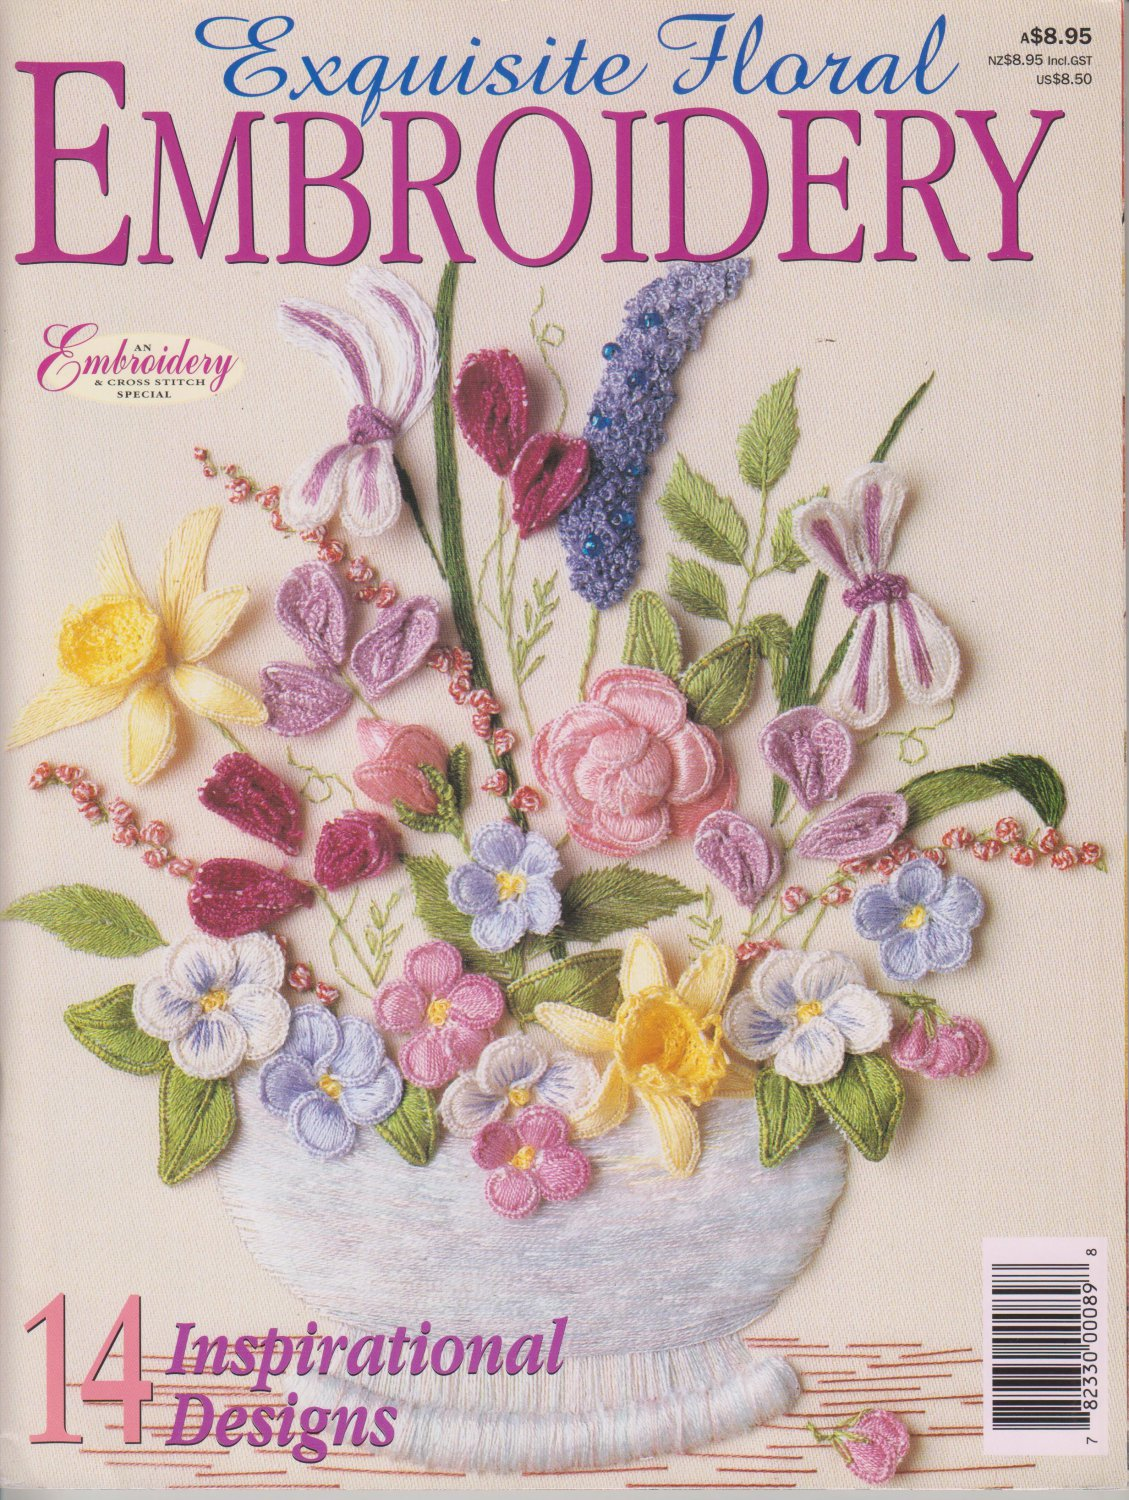 Exquisite Floral Embroidery 1999 Magazine with Pattern Sheet included